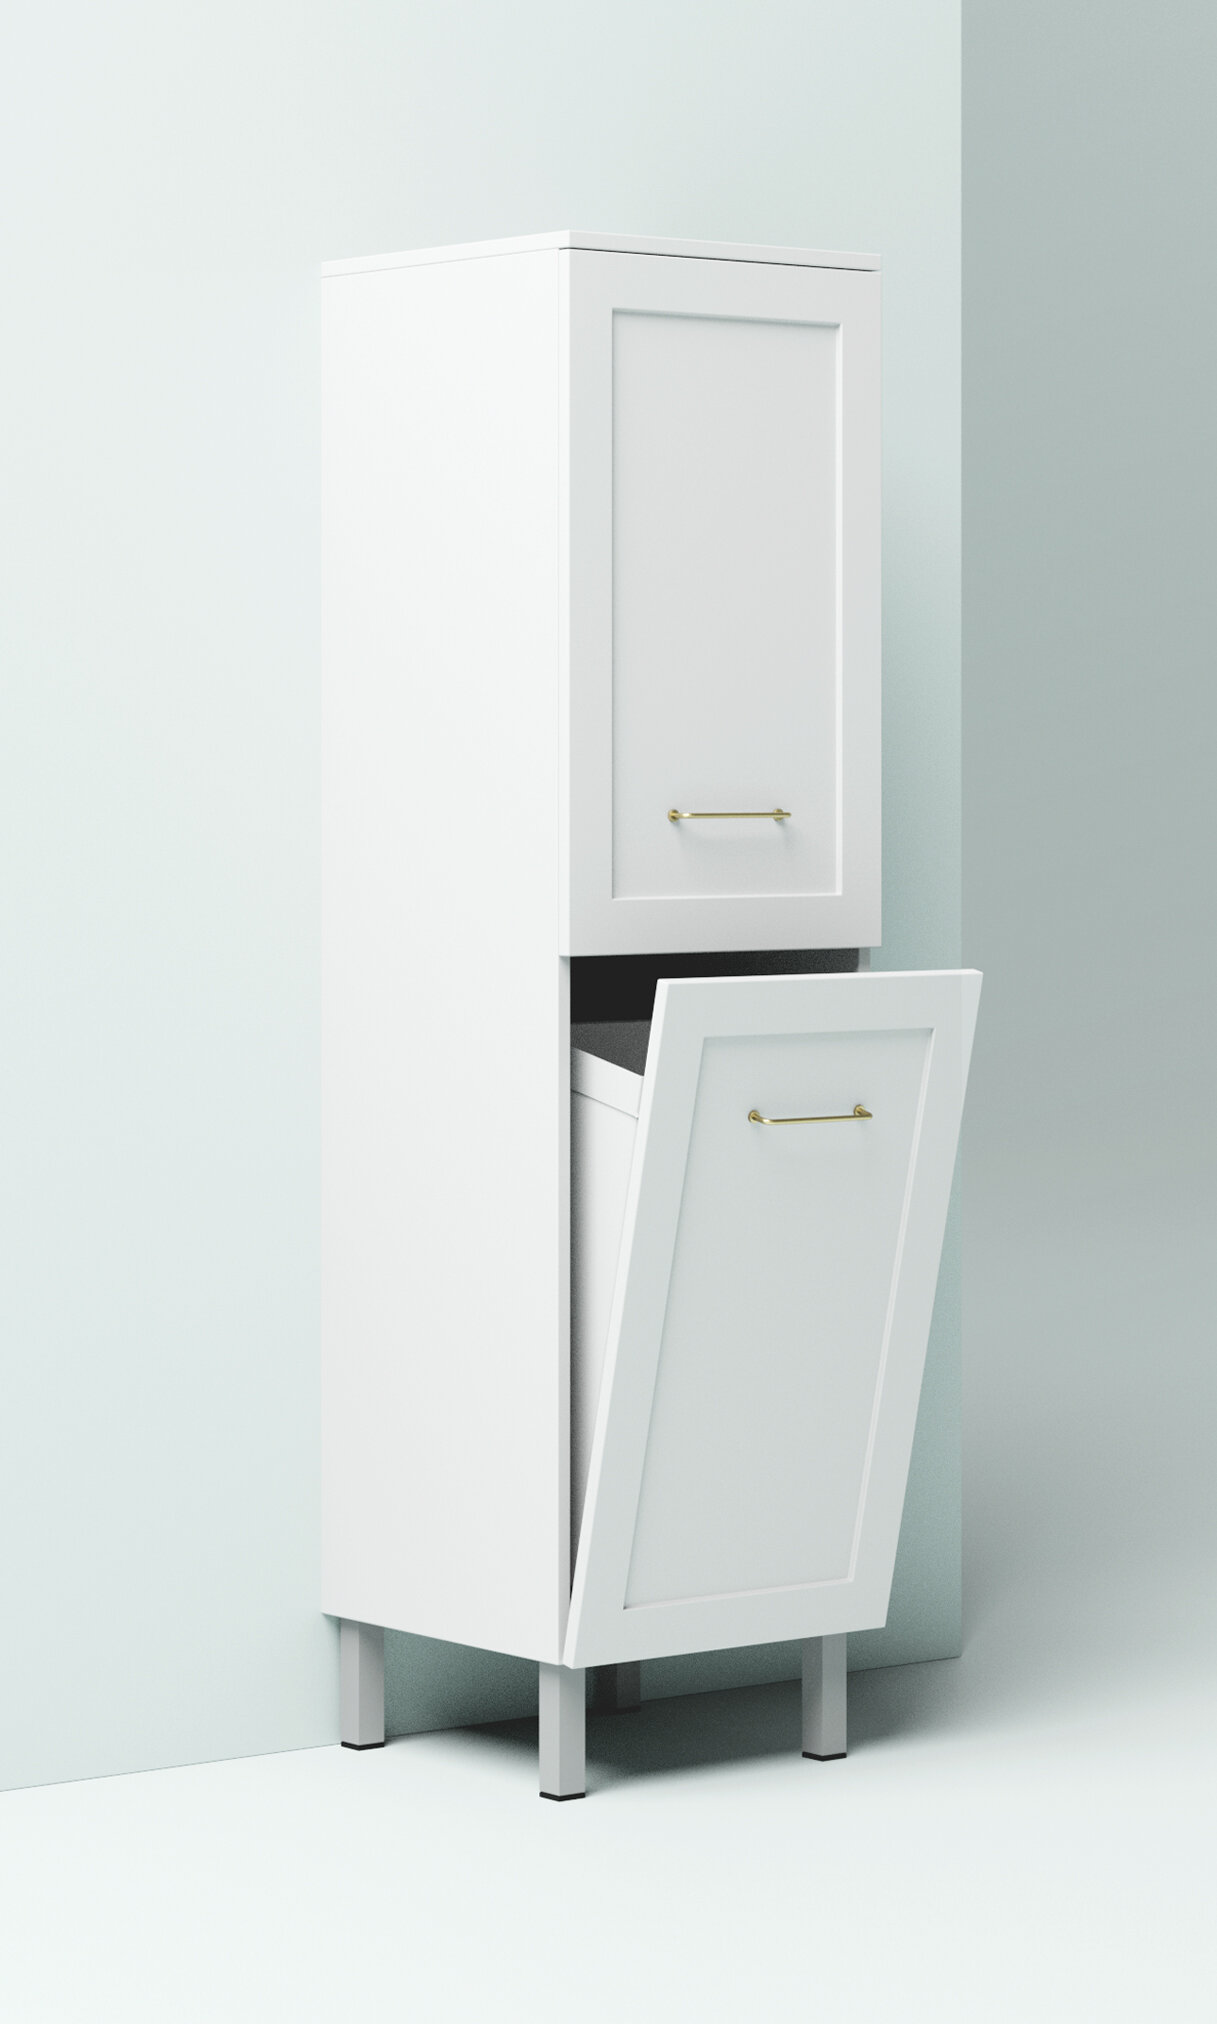 Laundry Hamper Tallboy Marquis, Tall Bathroom Cabinet With Laundry Hamper